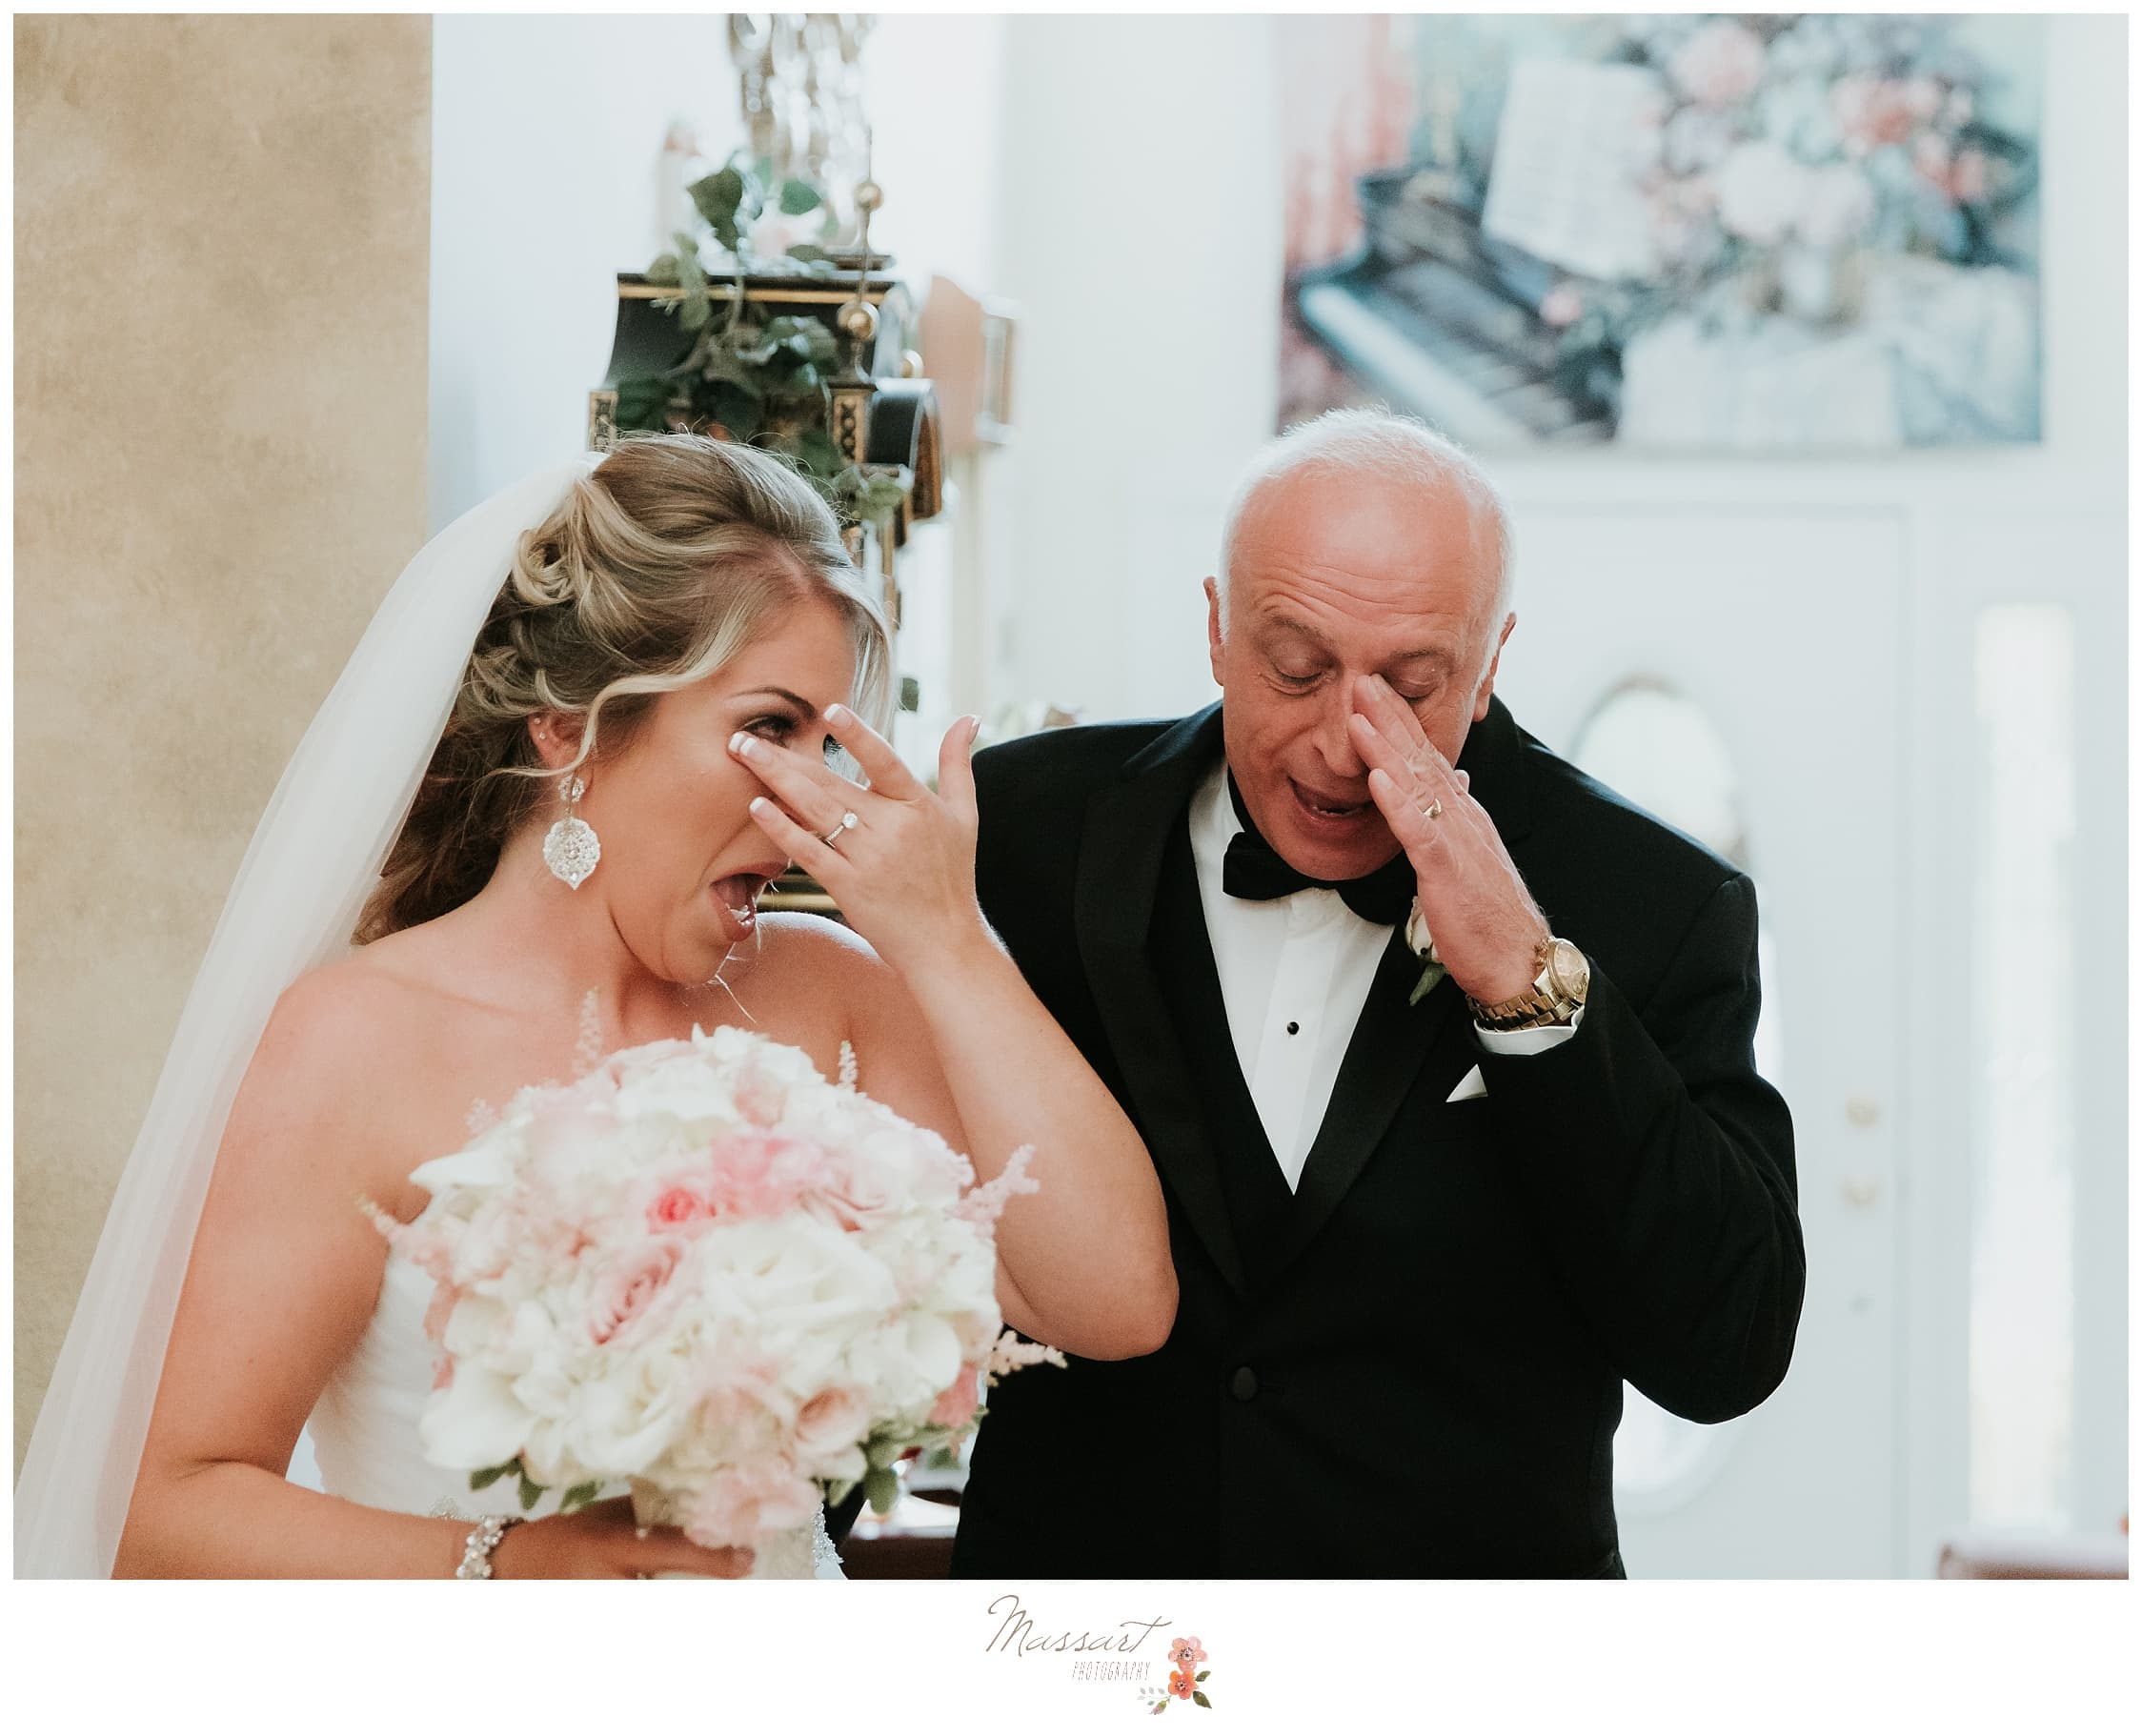 The bride and her father get emotional before walking down the aisle at the wedding ceremony photographed by Massart Photography RI